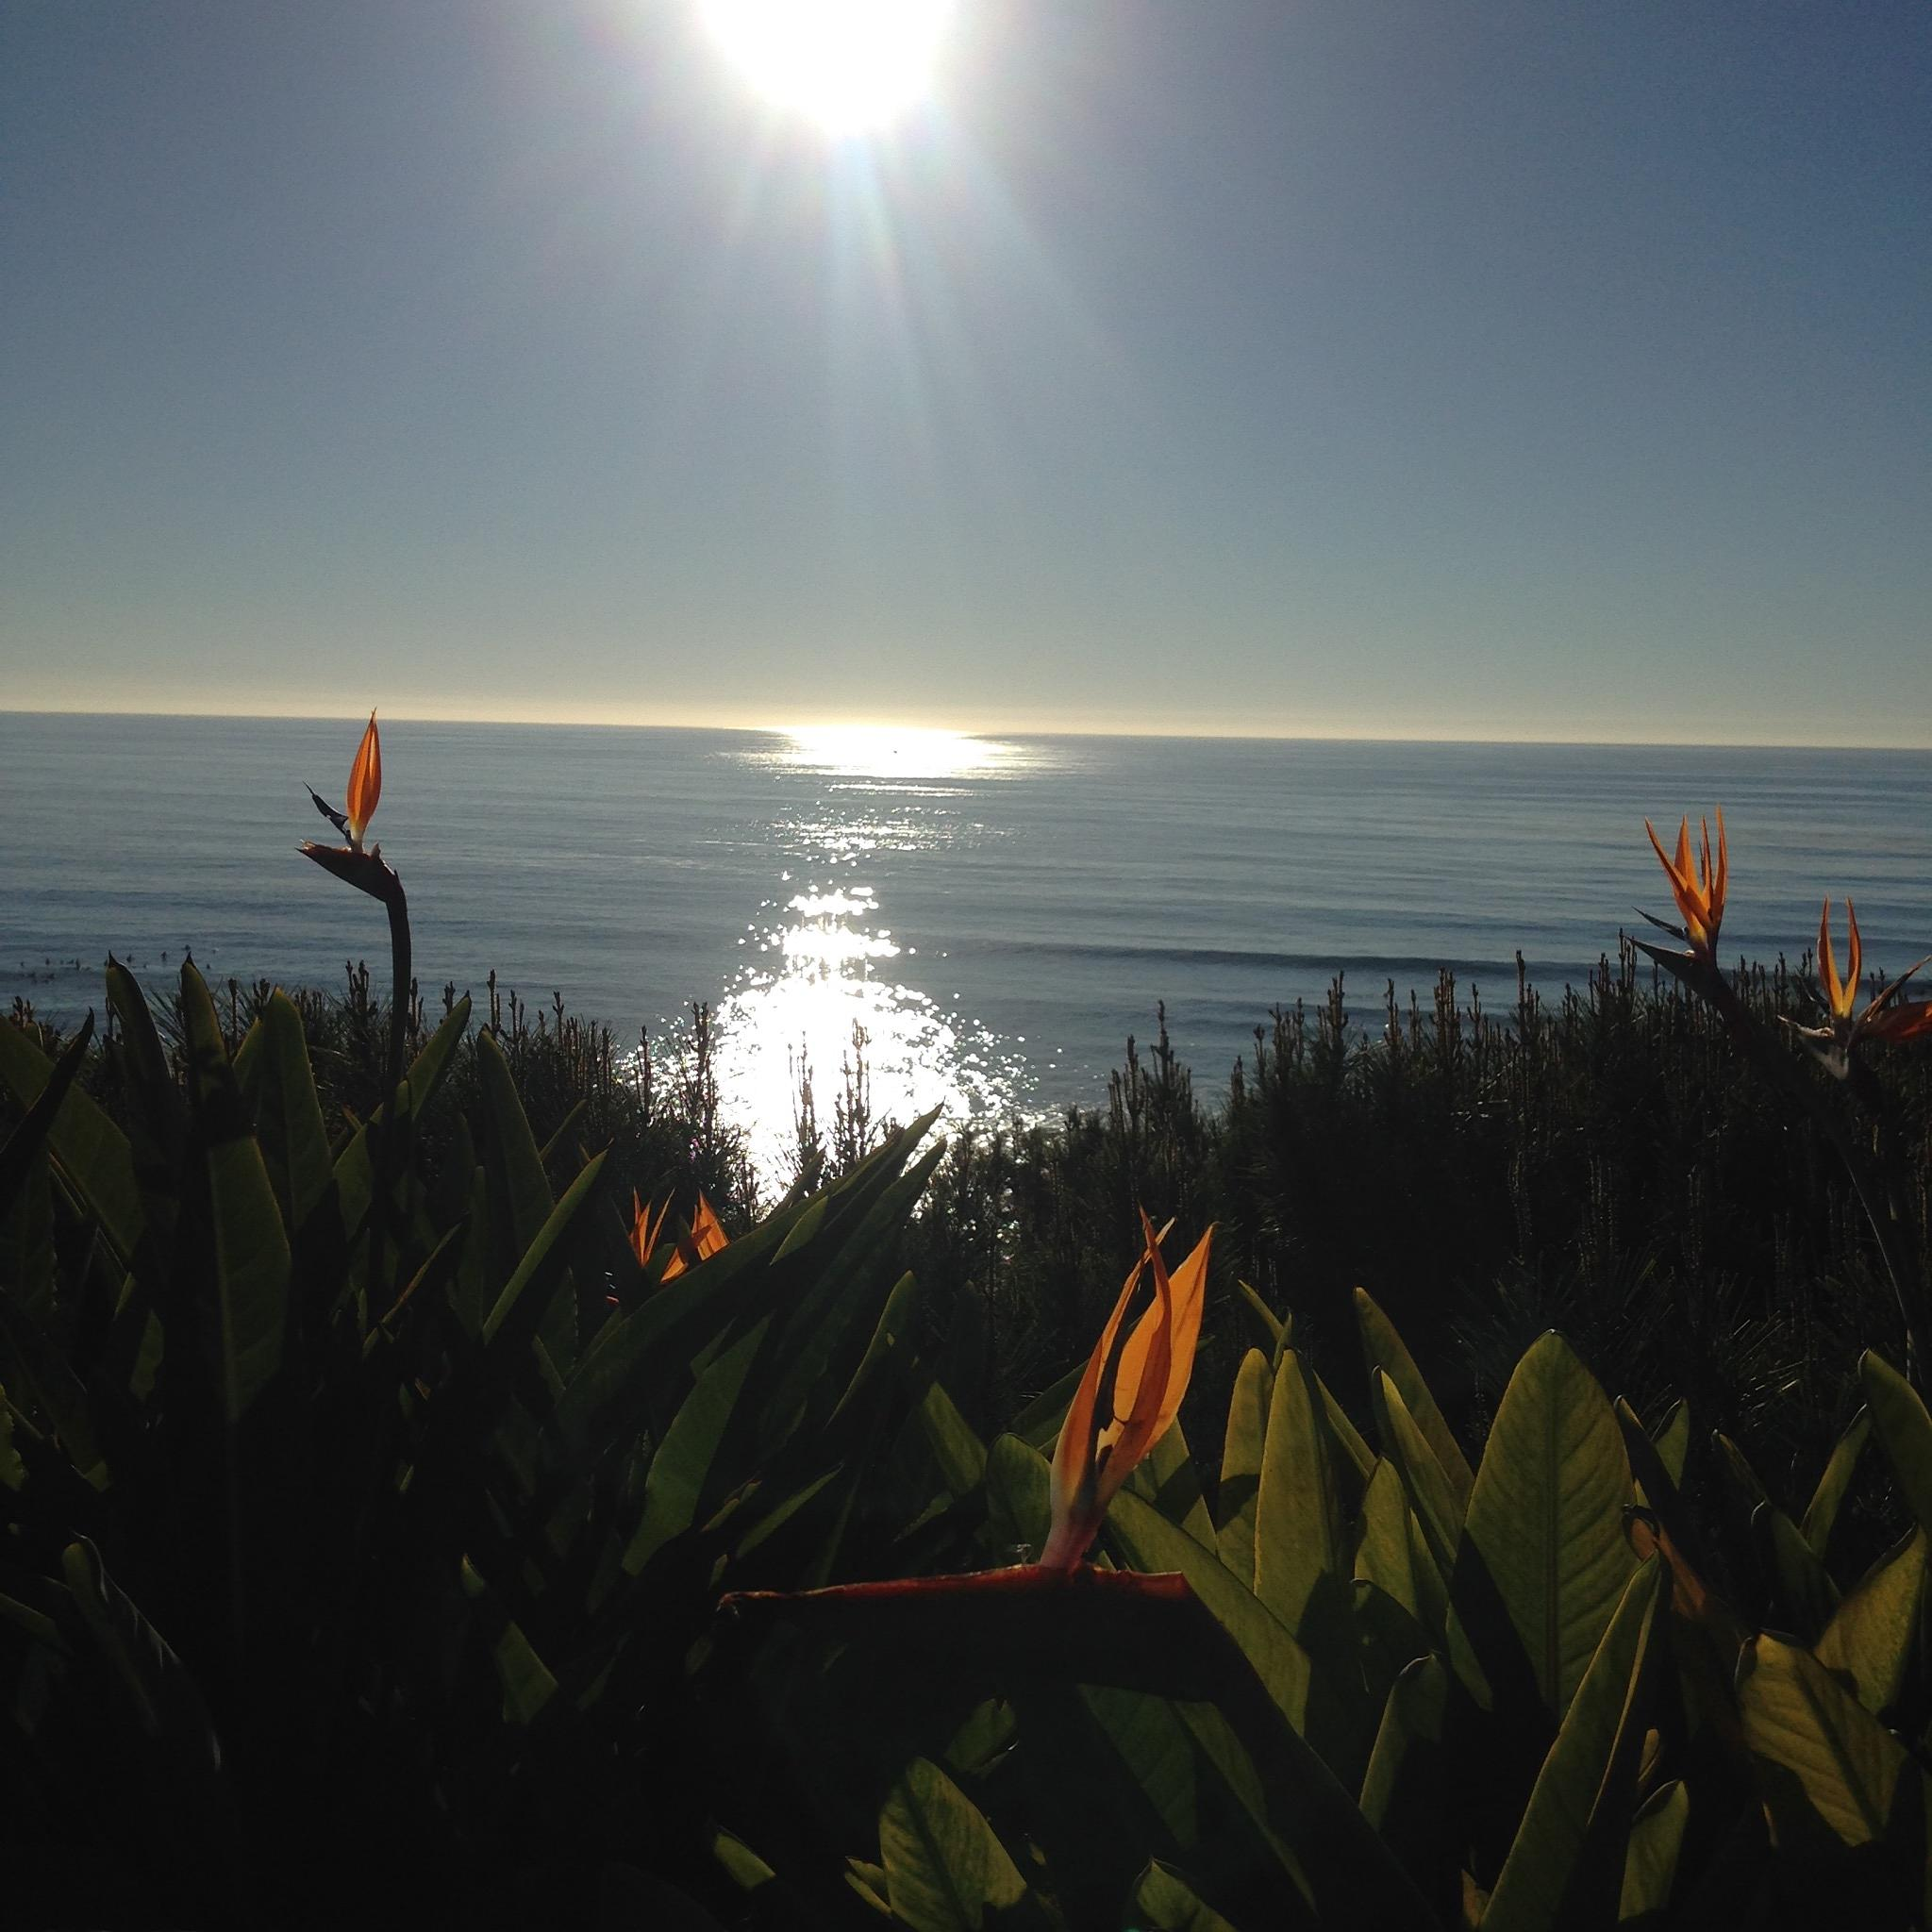 Pacific birds of paradise by jane.guy.moore